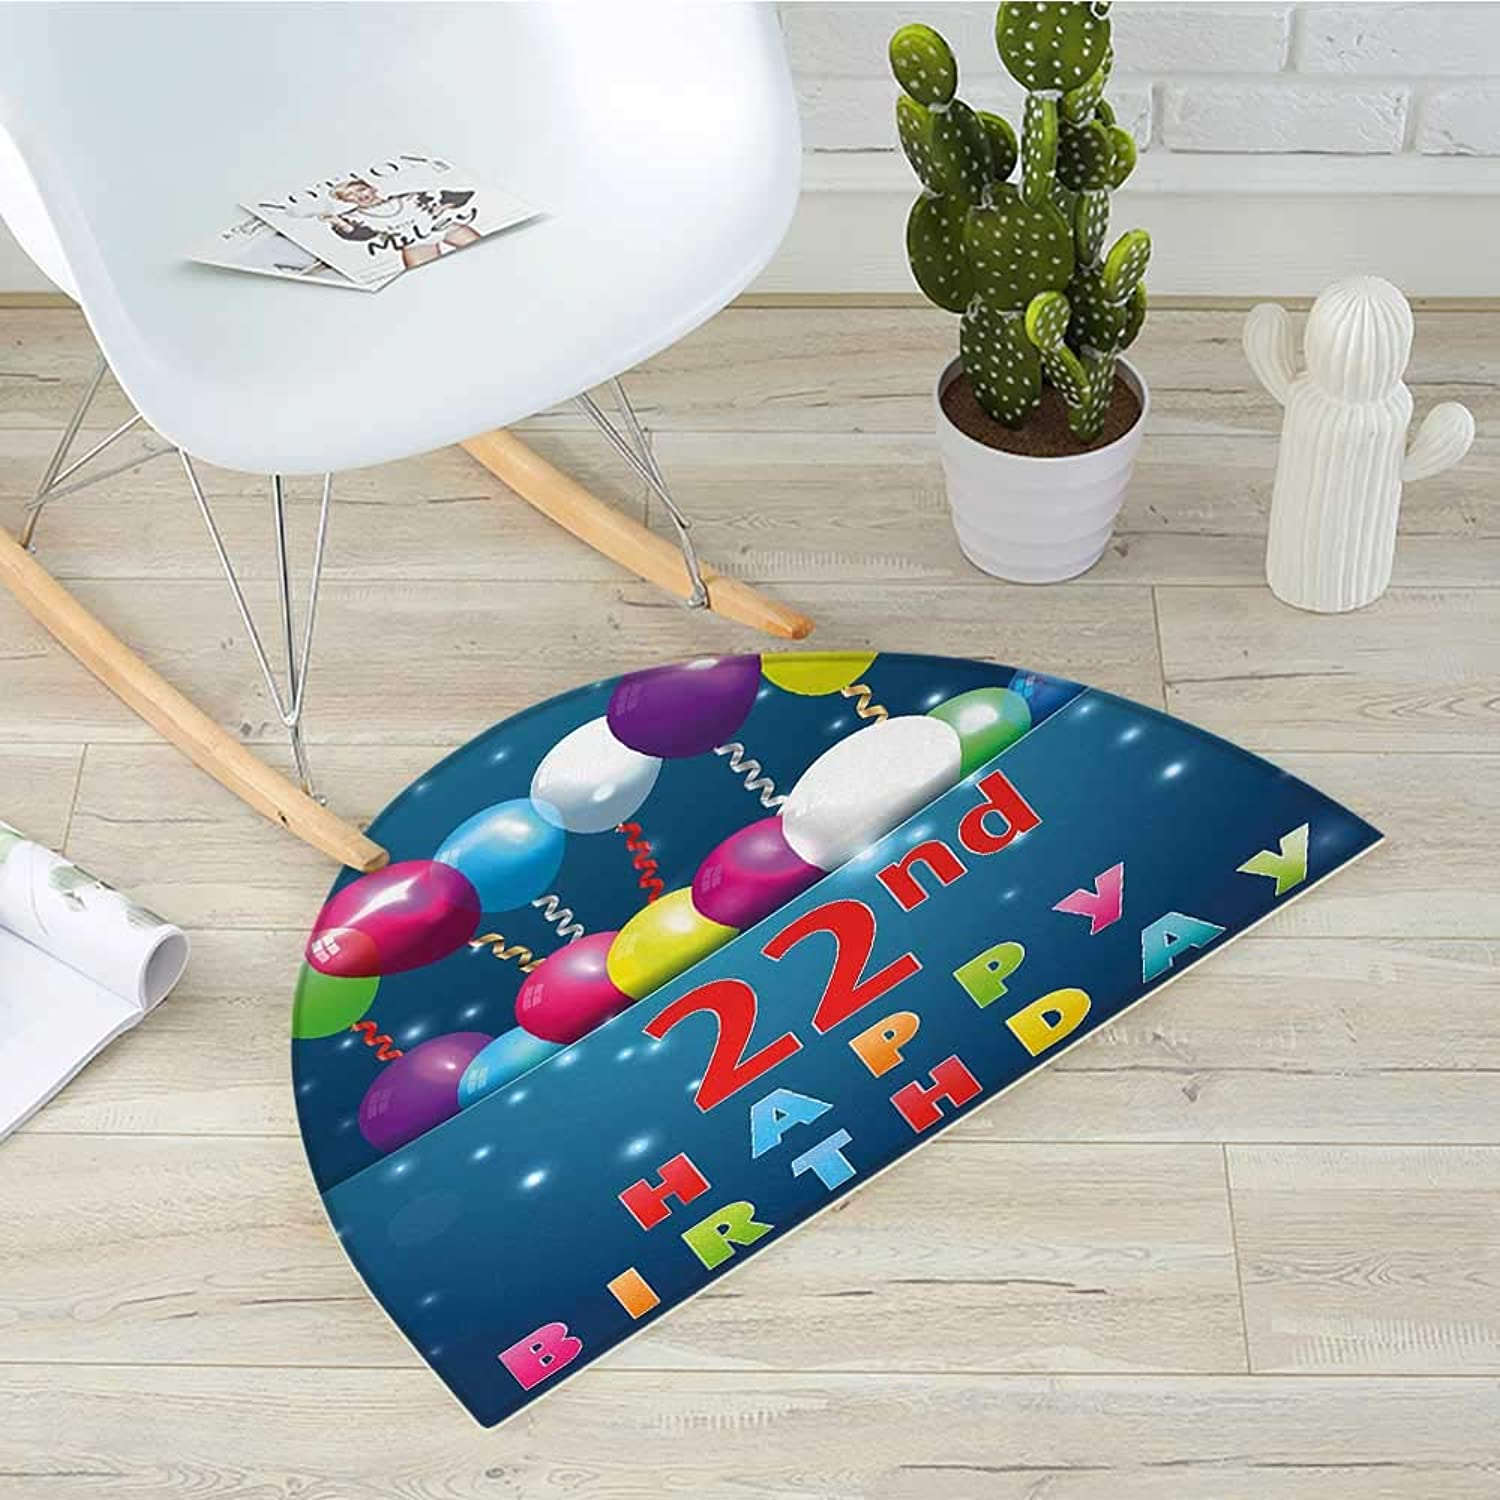 22nd Birthday Half Round Door mats Party Birth with colorful Balloons Wishes and Joyful Occasion Image Print Bathroom Mat H 31.5  xD 47.2  Multicolor